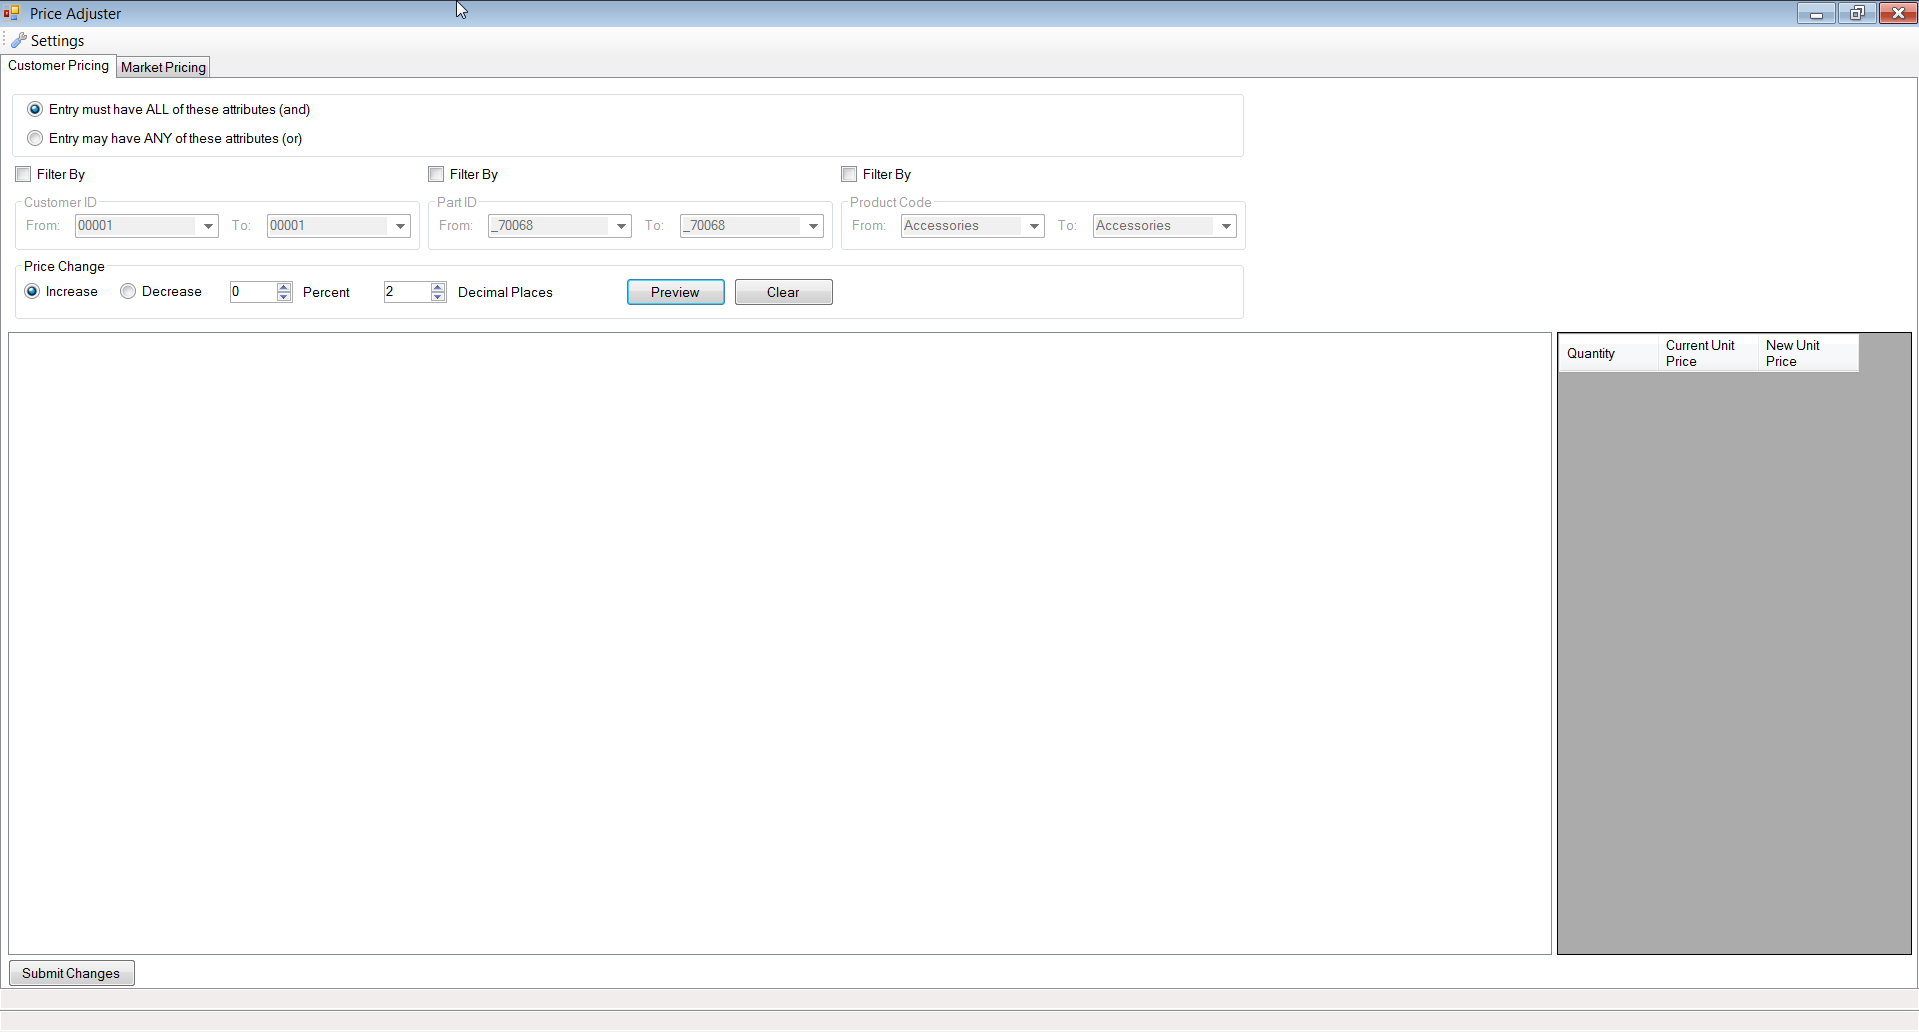 Price Adjuster by SaberLogic for Infor VISUAL ERP - Screenshot 2